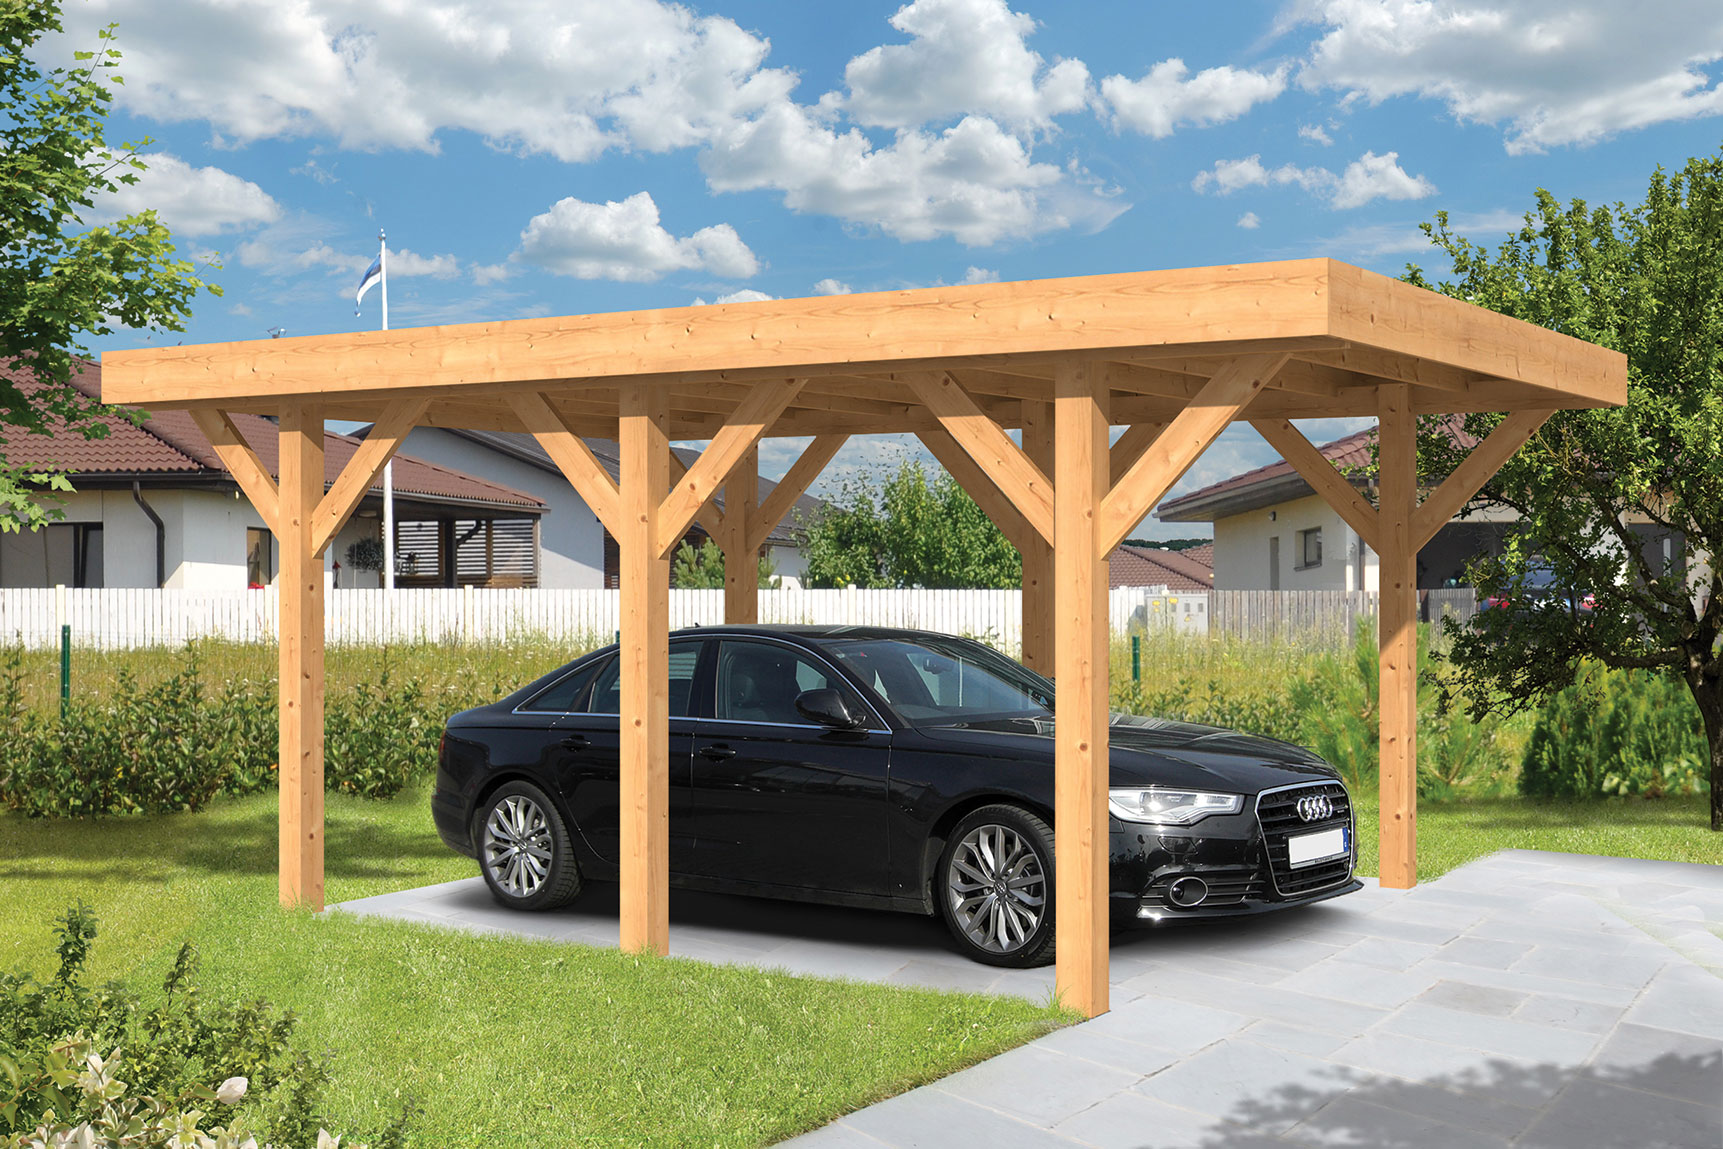 houten carport bouwen tips overkapping voor auto maken. Black Bedroom Furniture Sets. Home Design Ideas